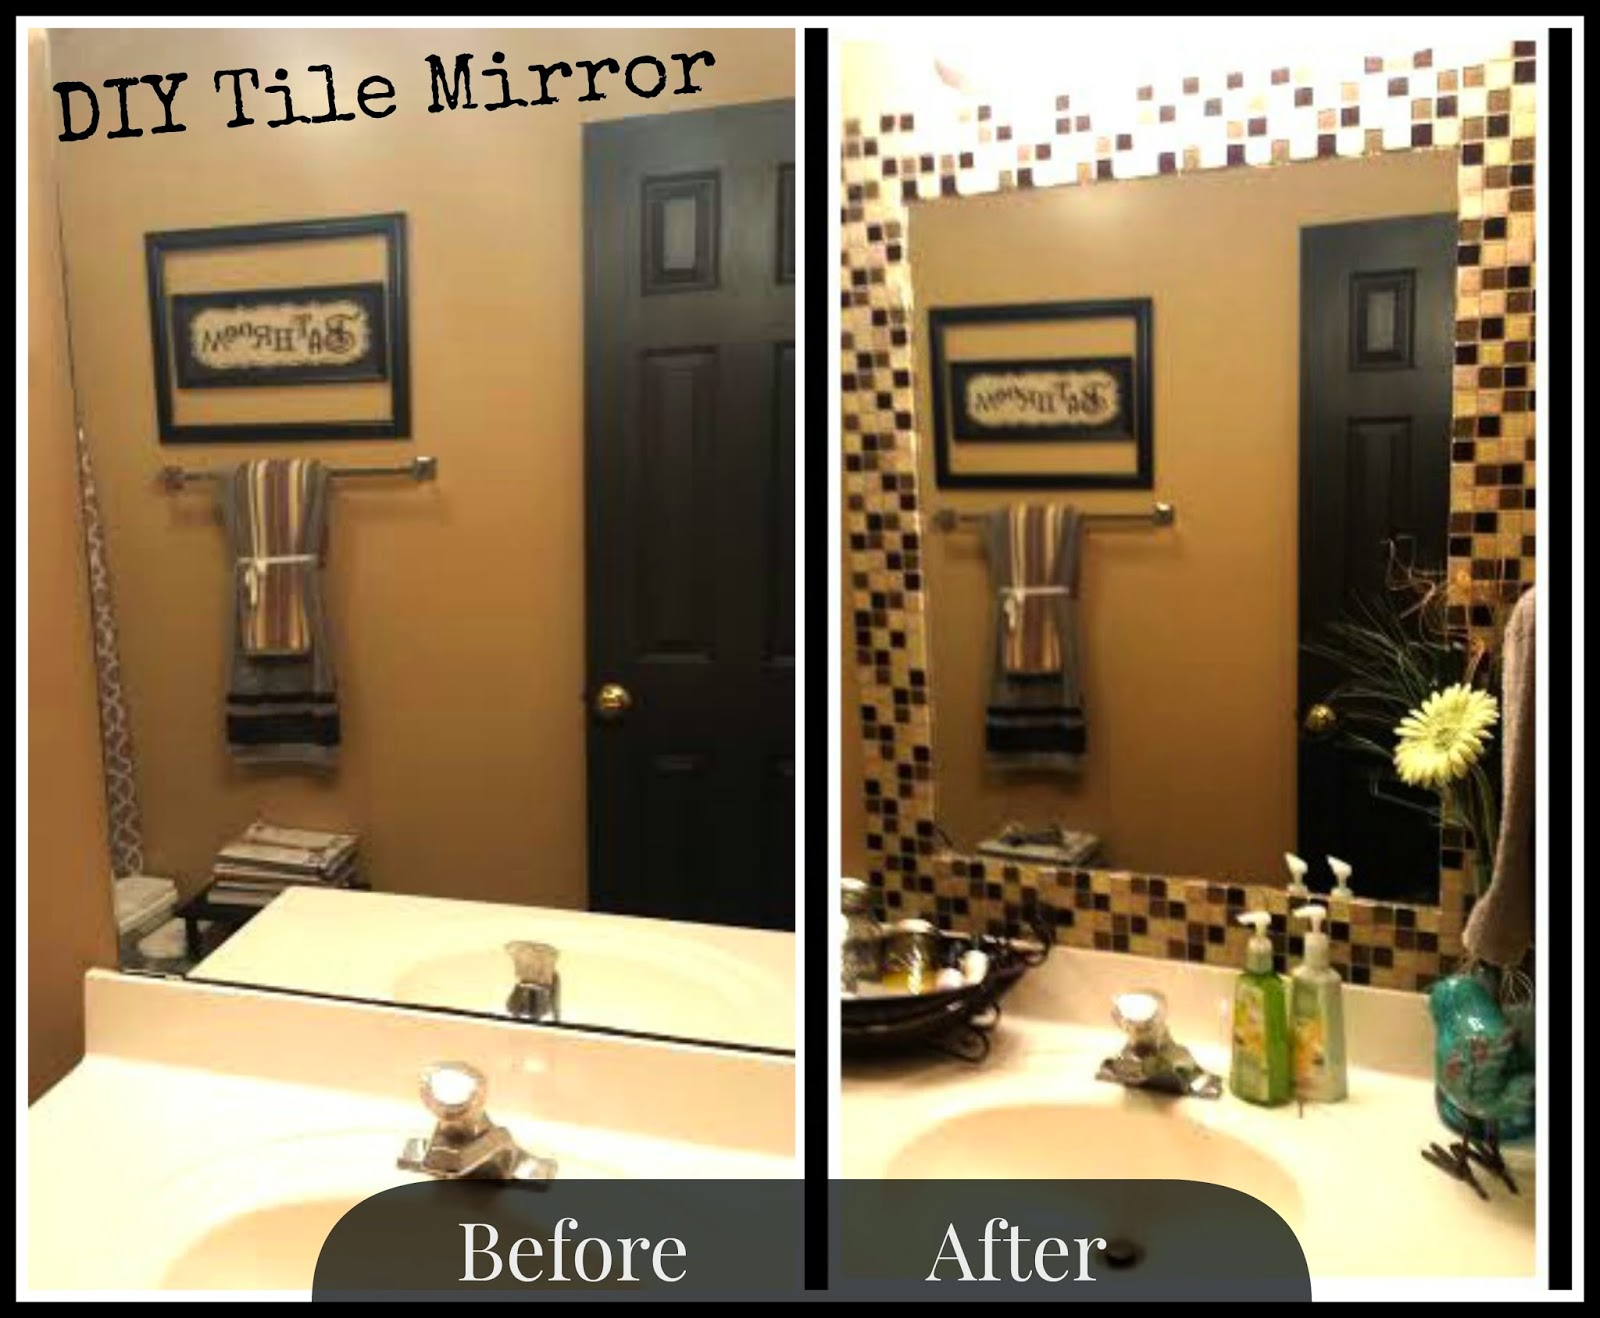 Tonya Locklear: DIY Tile Mirror